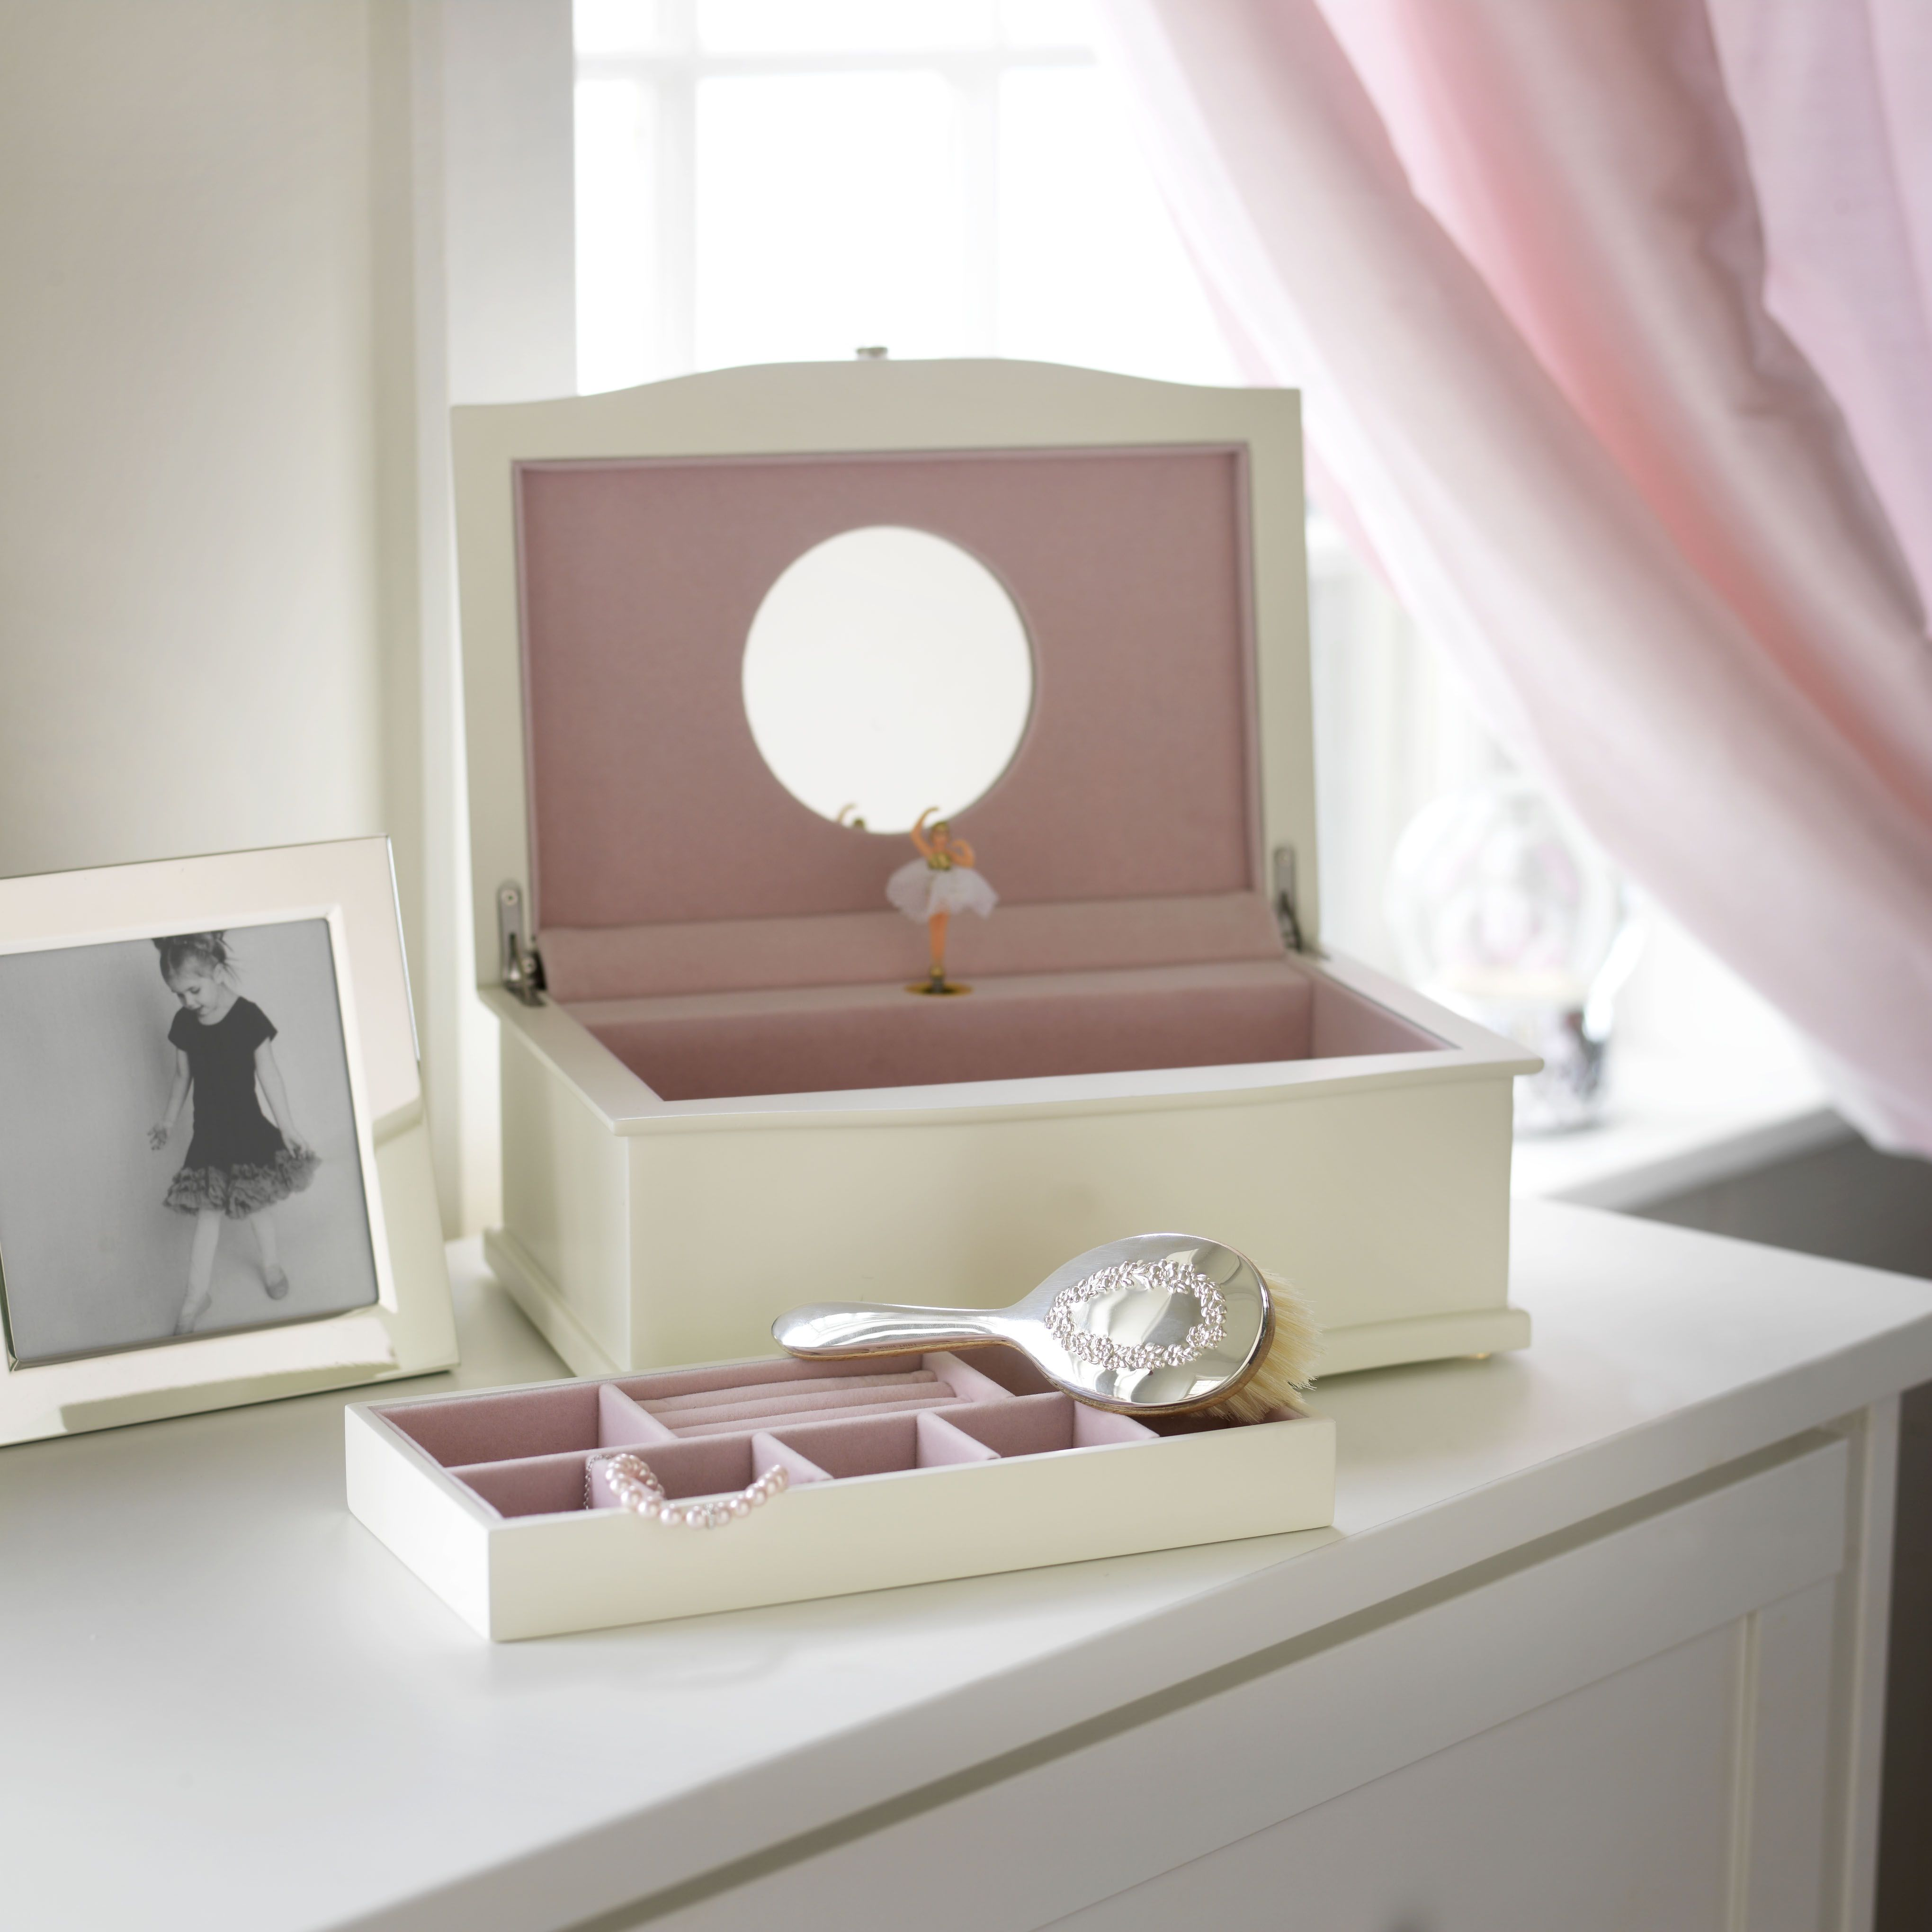 Jewelry Boxes For Girls are great gift ideas that would please any